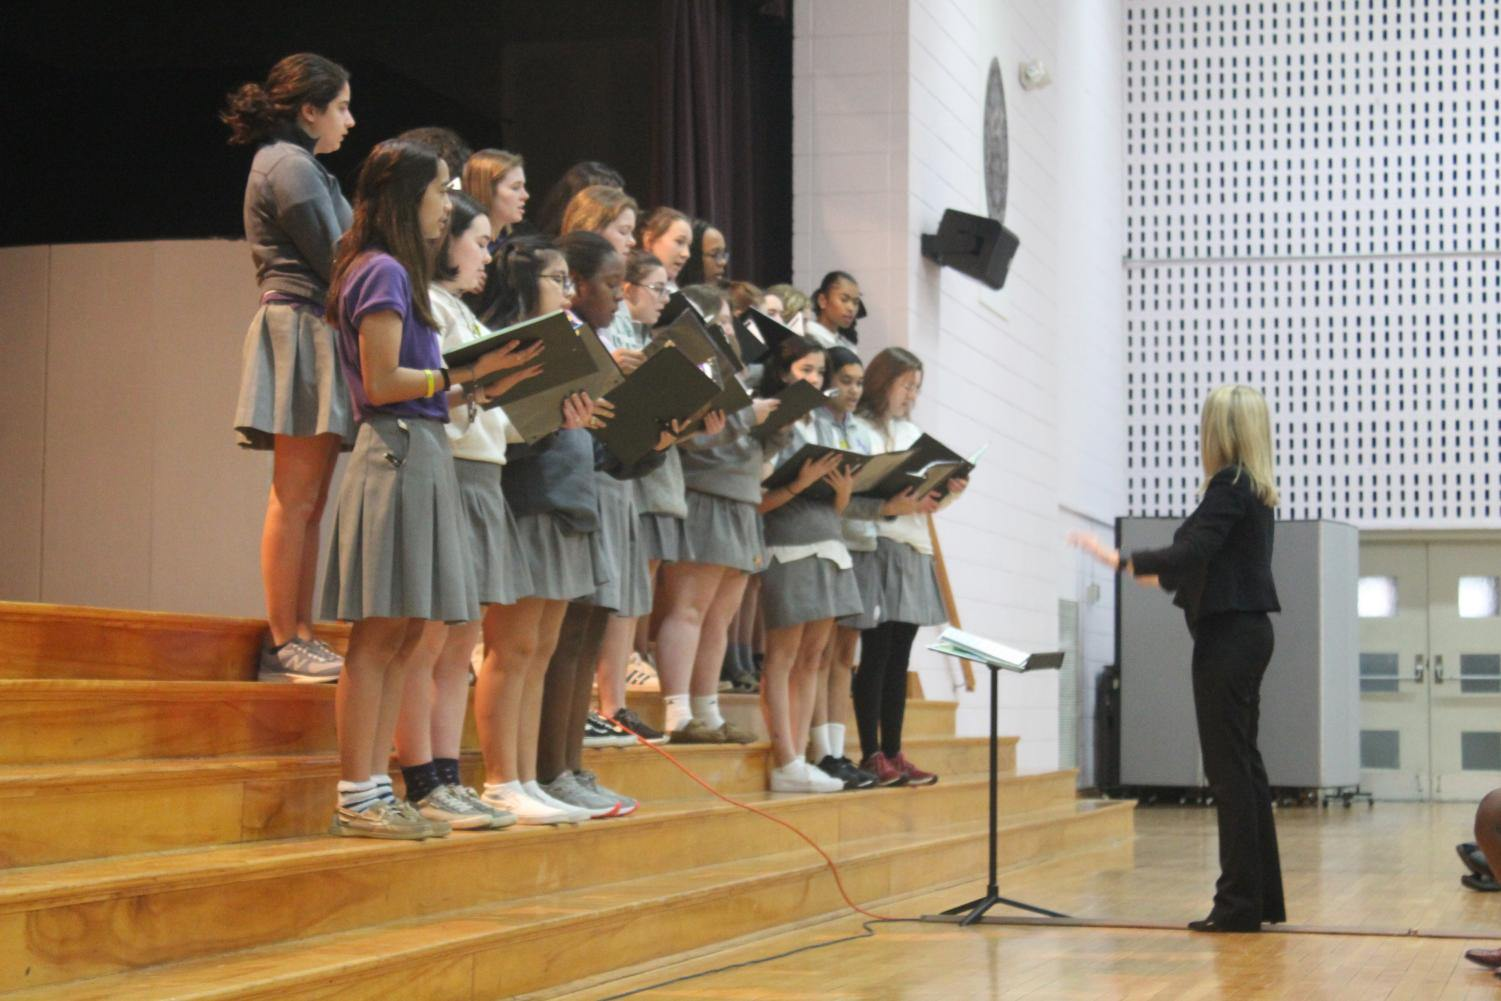 The choir performed for Immaculee and the entire school.